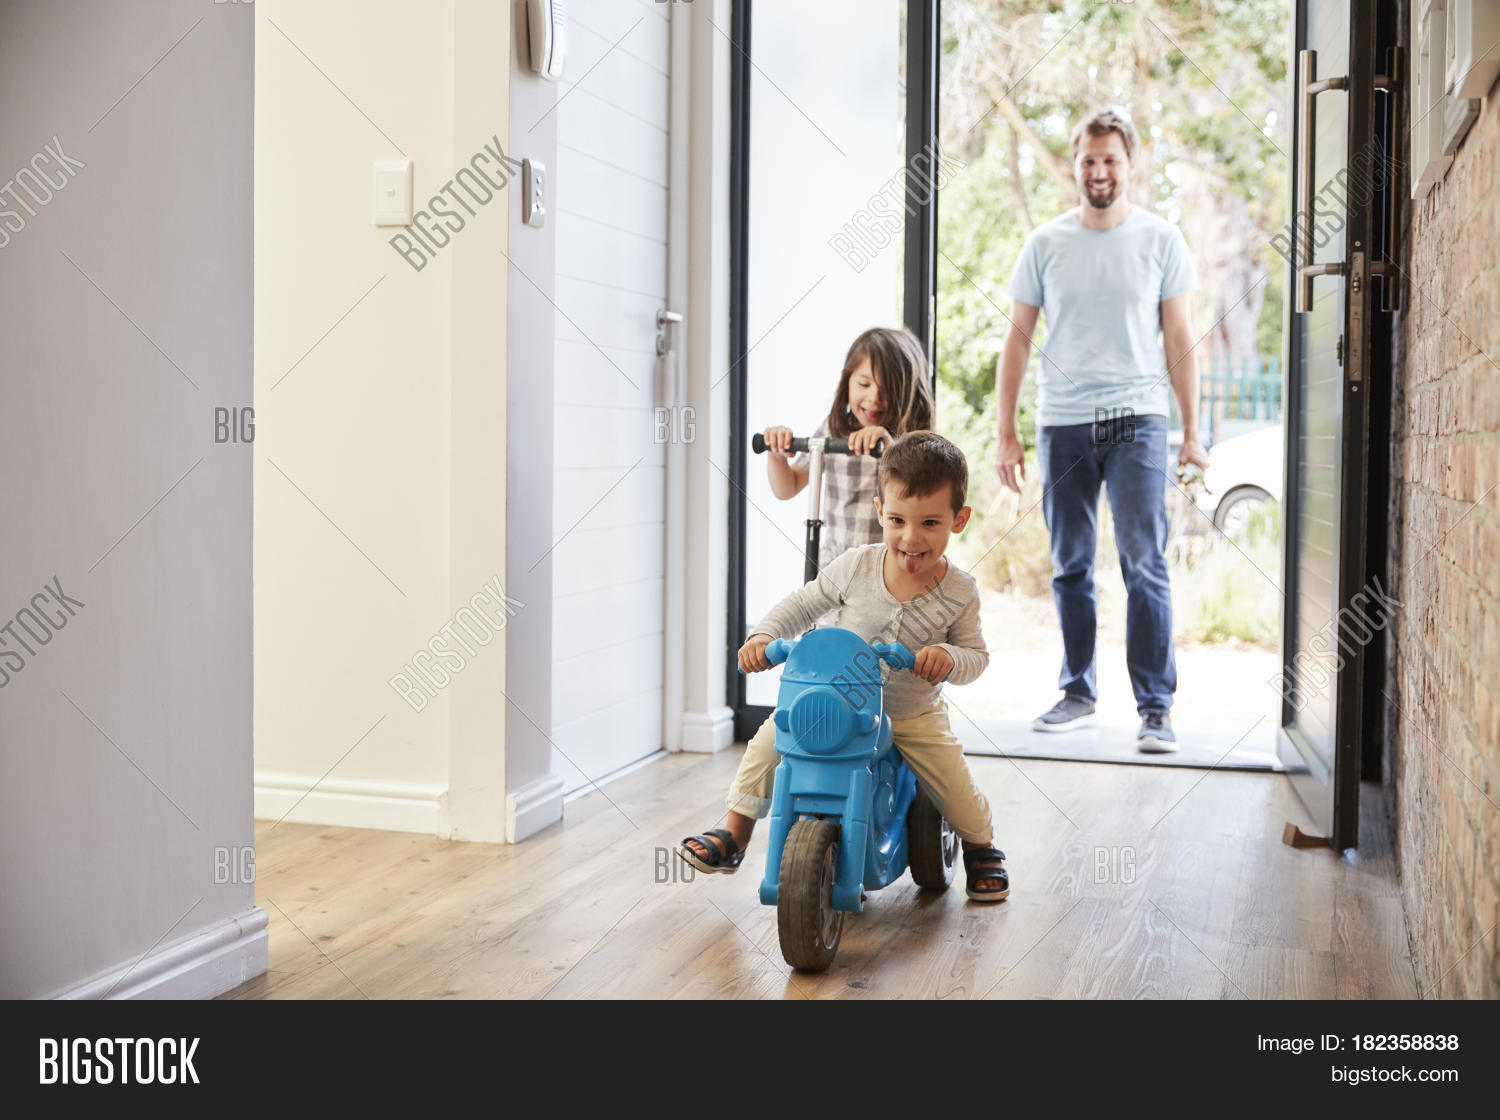 Excited Children Arriving Home Image & Photo | Bigstock